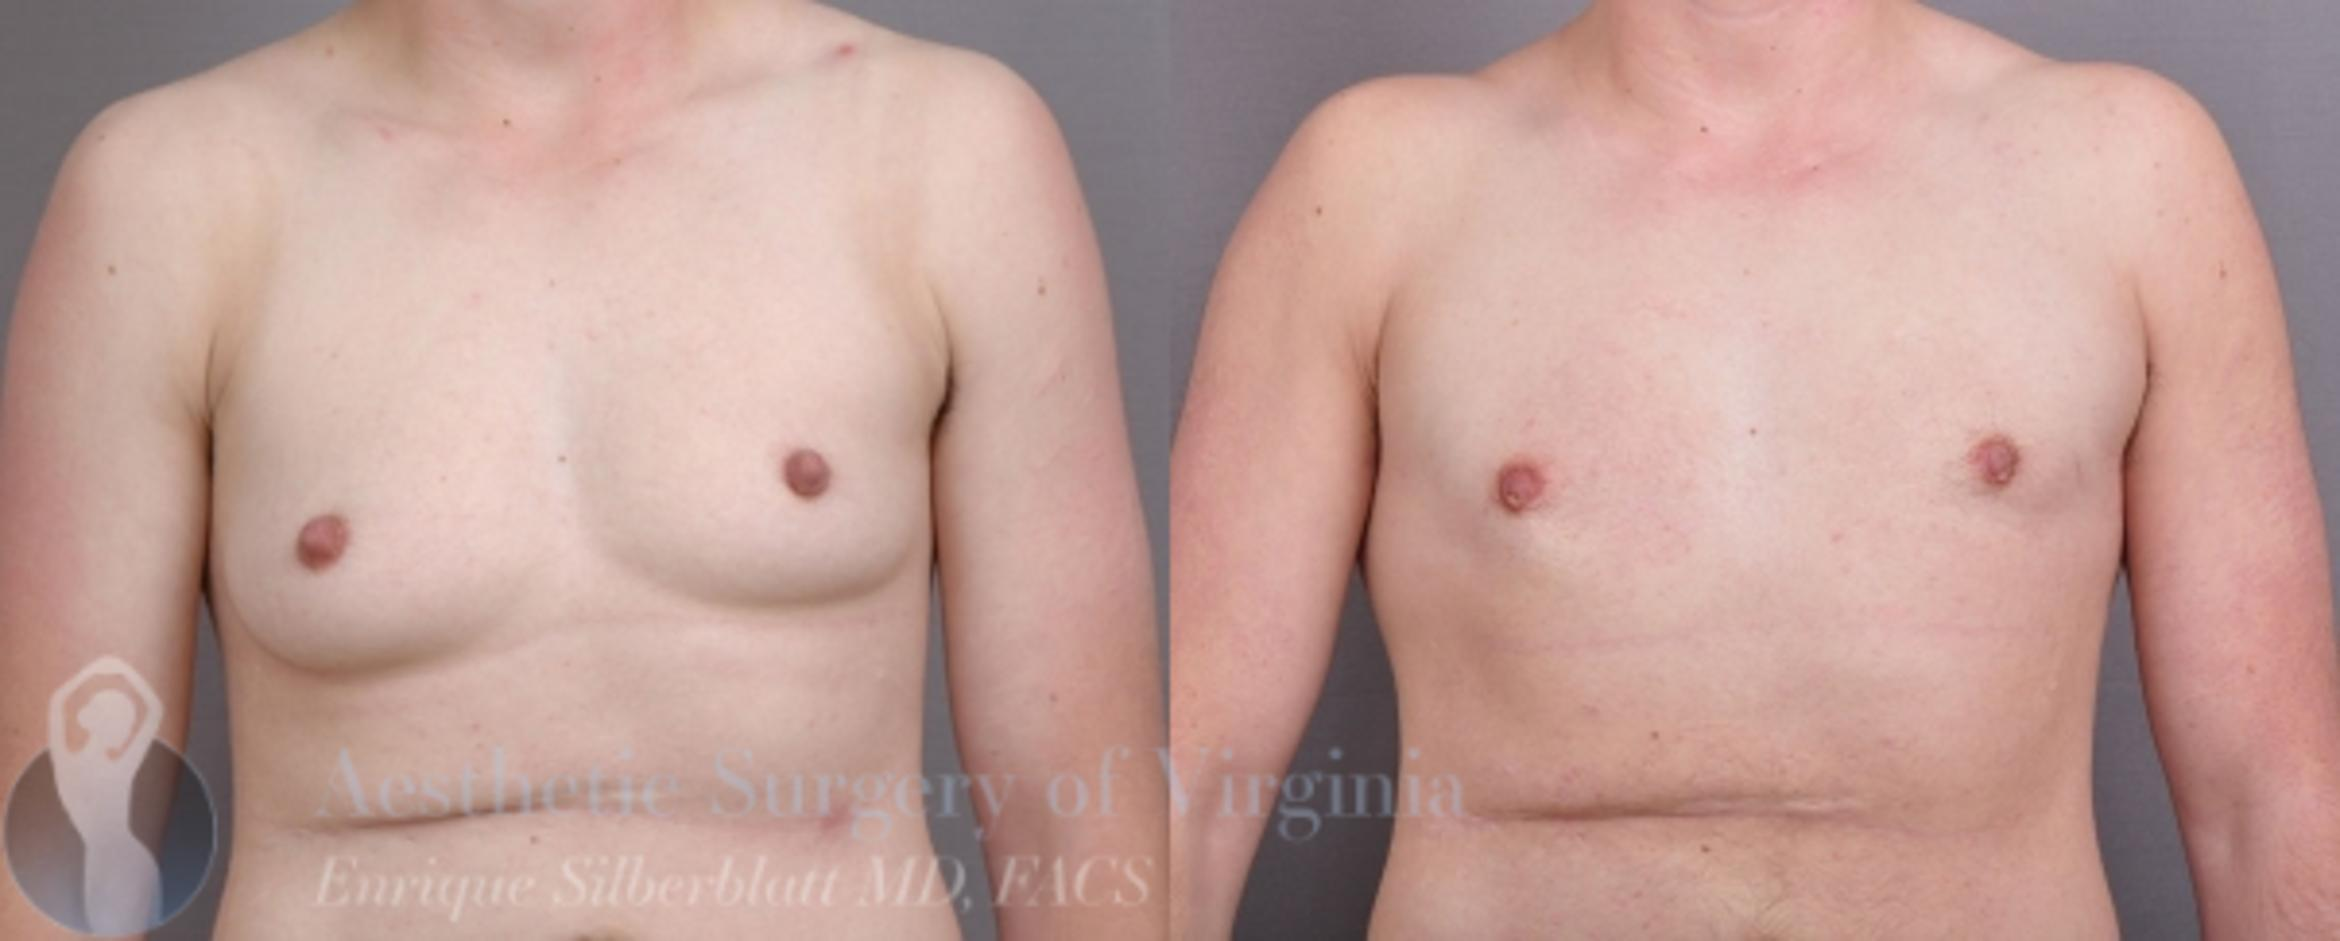 Female to Male Breast Surgery Case 56 Before & After View #1 | Roanoke, VA | Aesthetic Surgery of Virginia: Enrique Silberblatt, MD